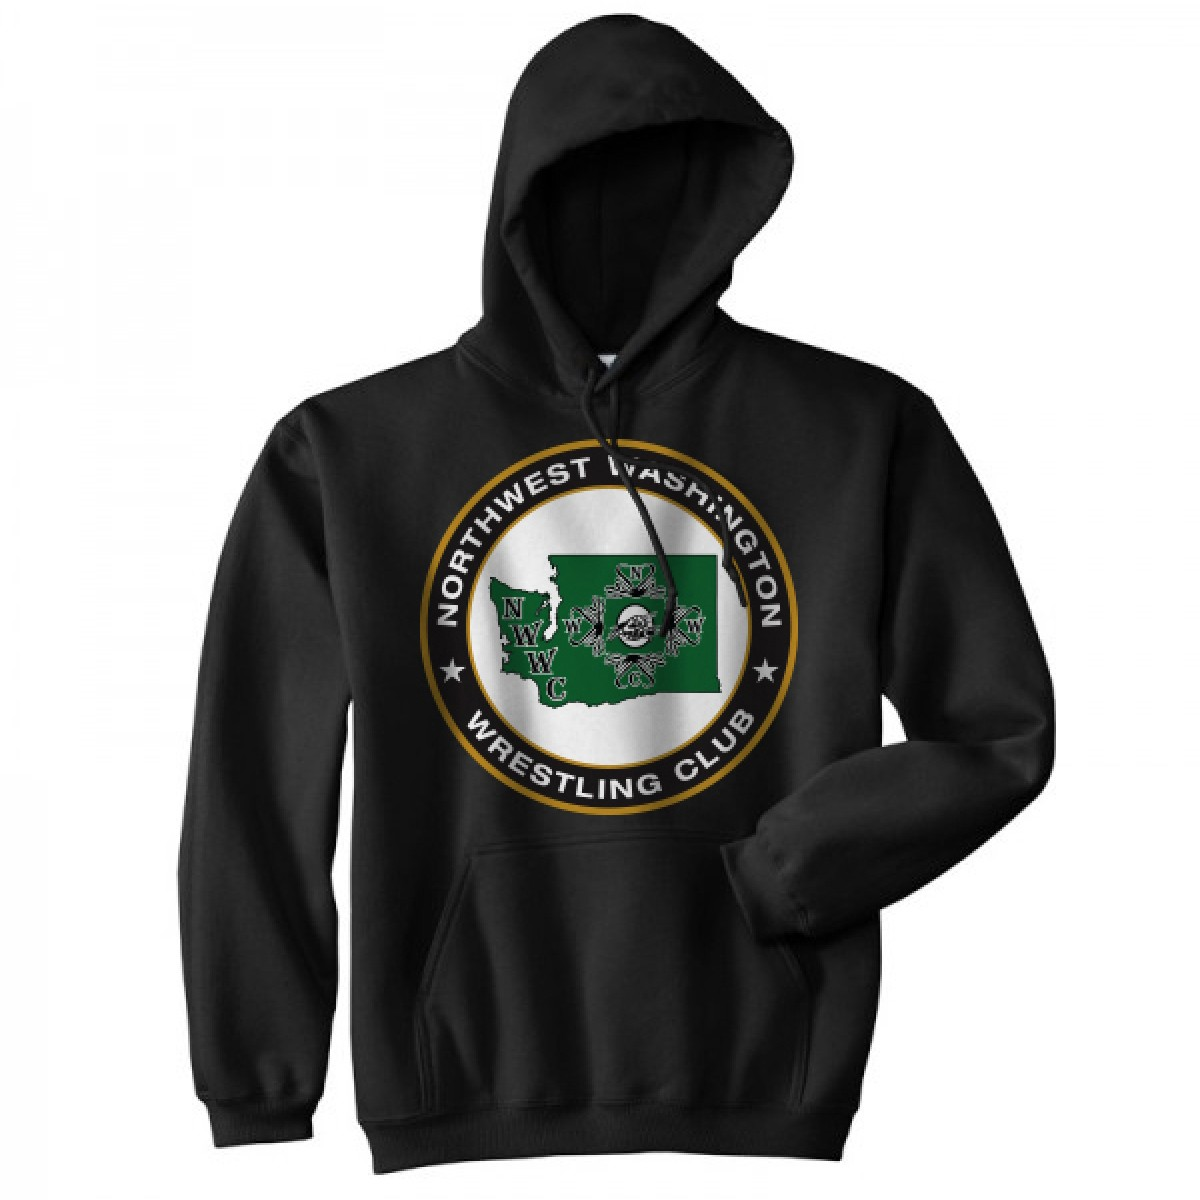 NWWC Black Hoodie With Green Logo-Black-S